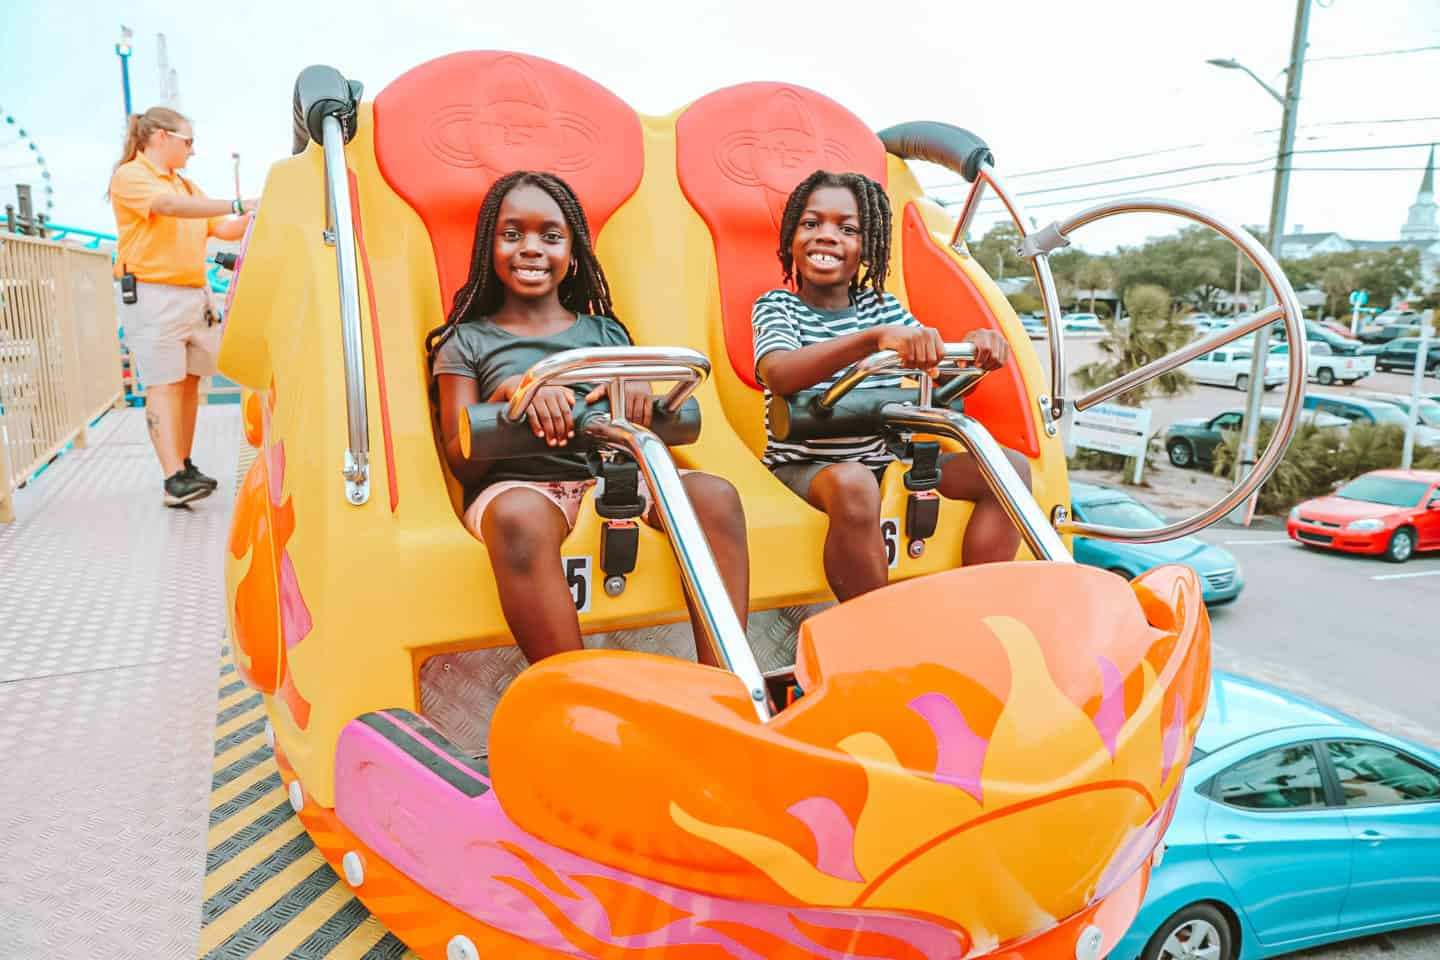 30 + Things To Do In Myrtle Beach With Kids